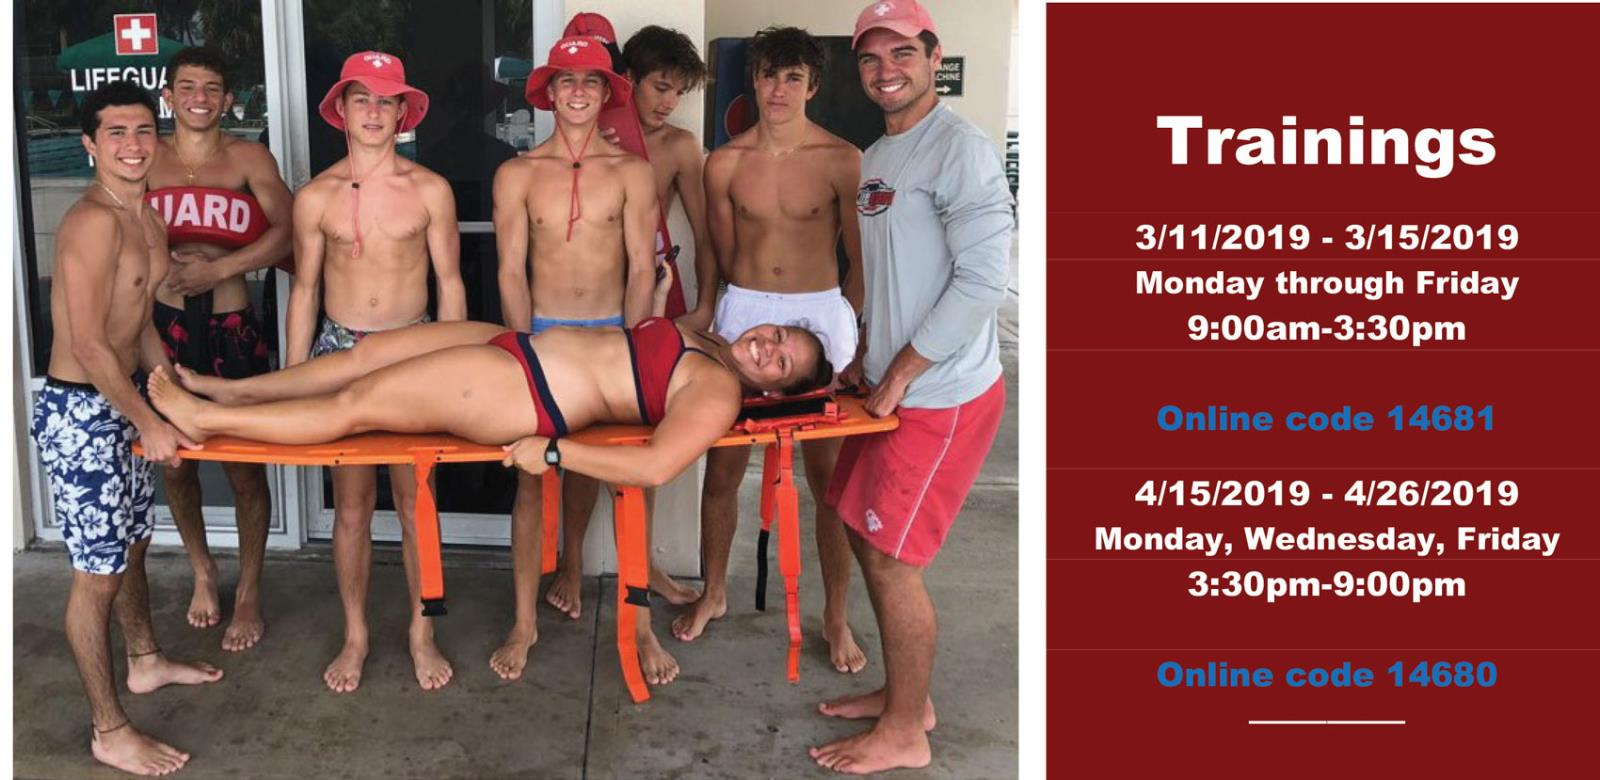 Lifeguard-Training-2-28-19